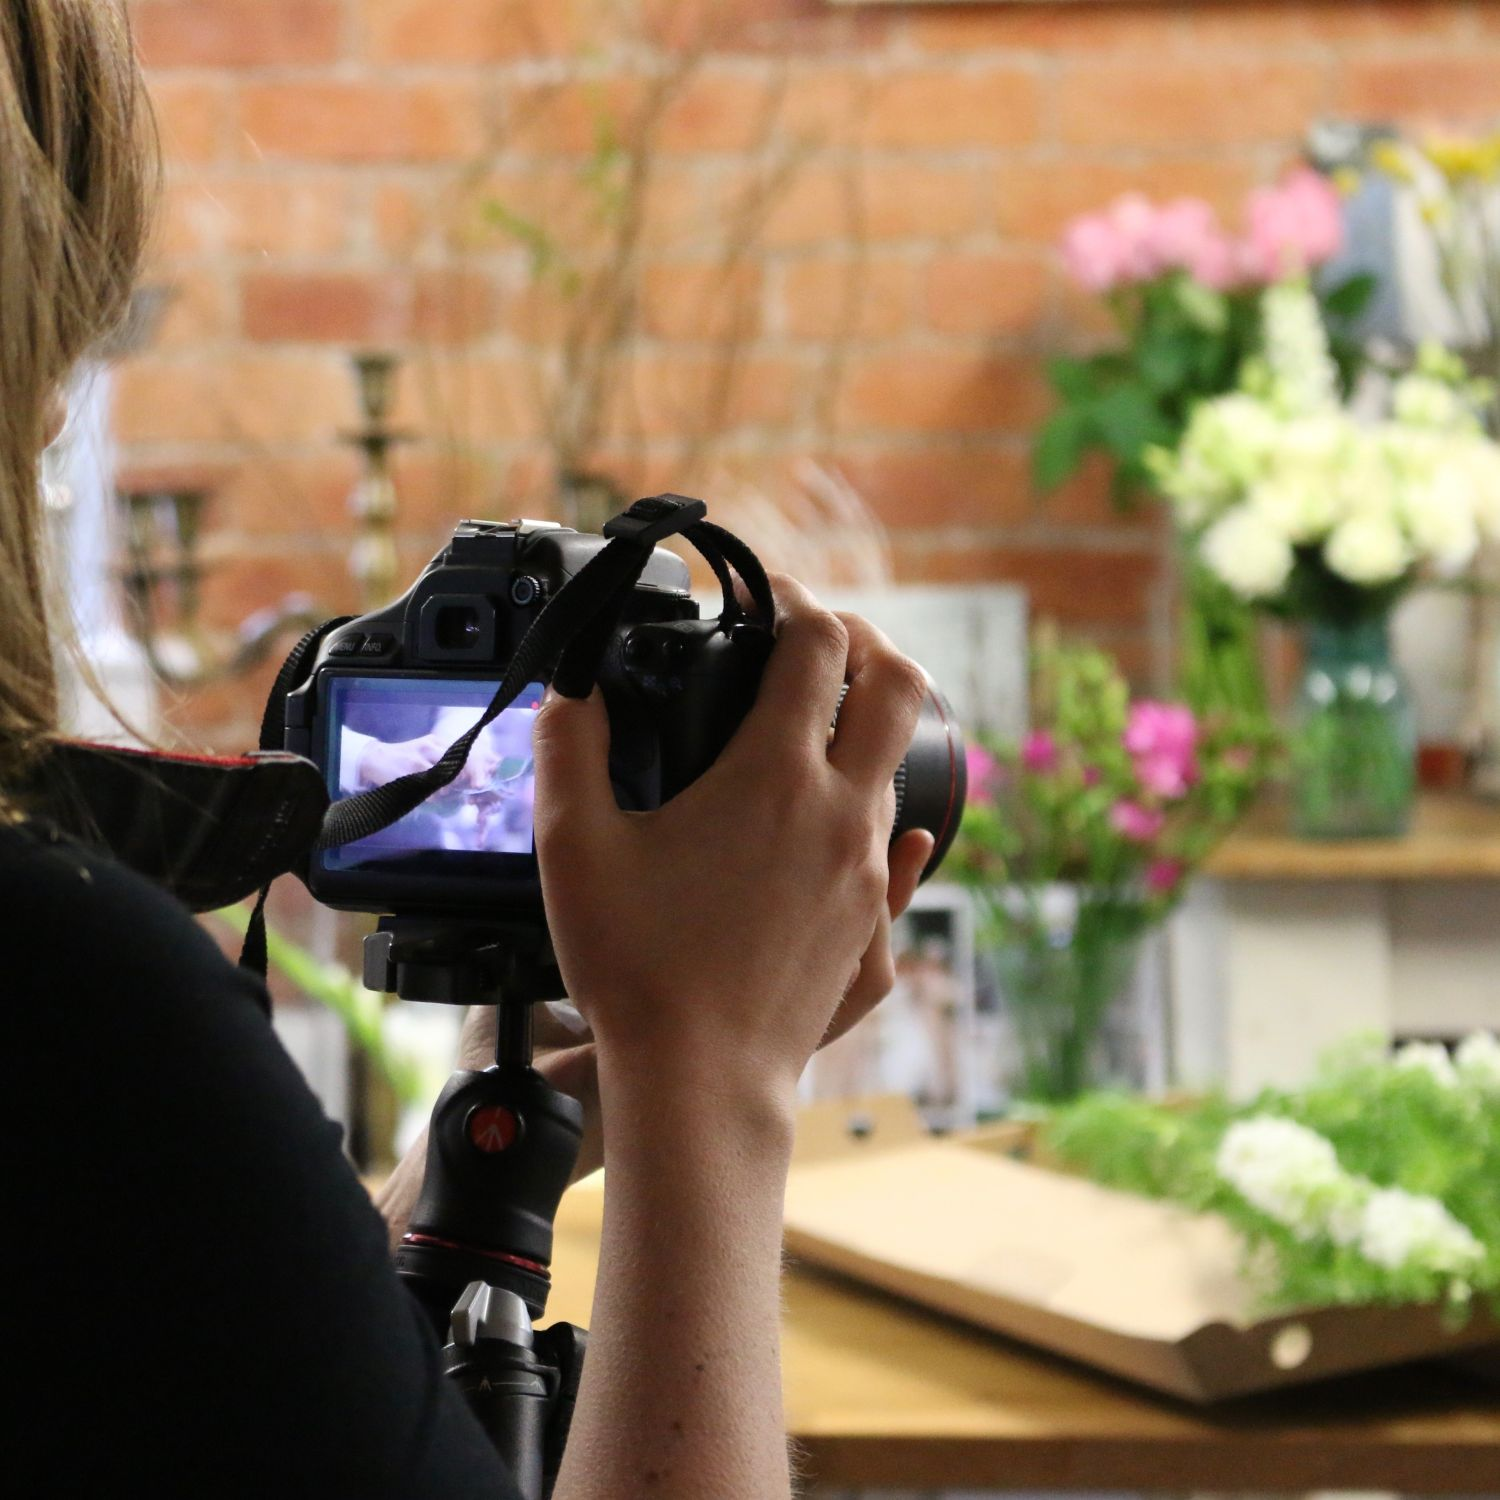 Award winning Tineke floral design studio in Derbyshire.